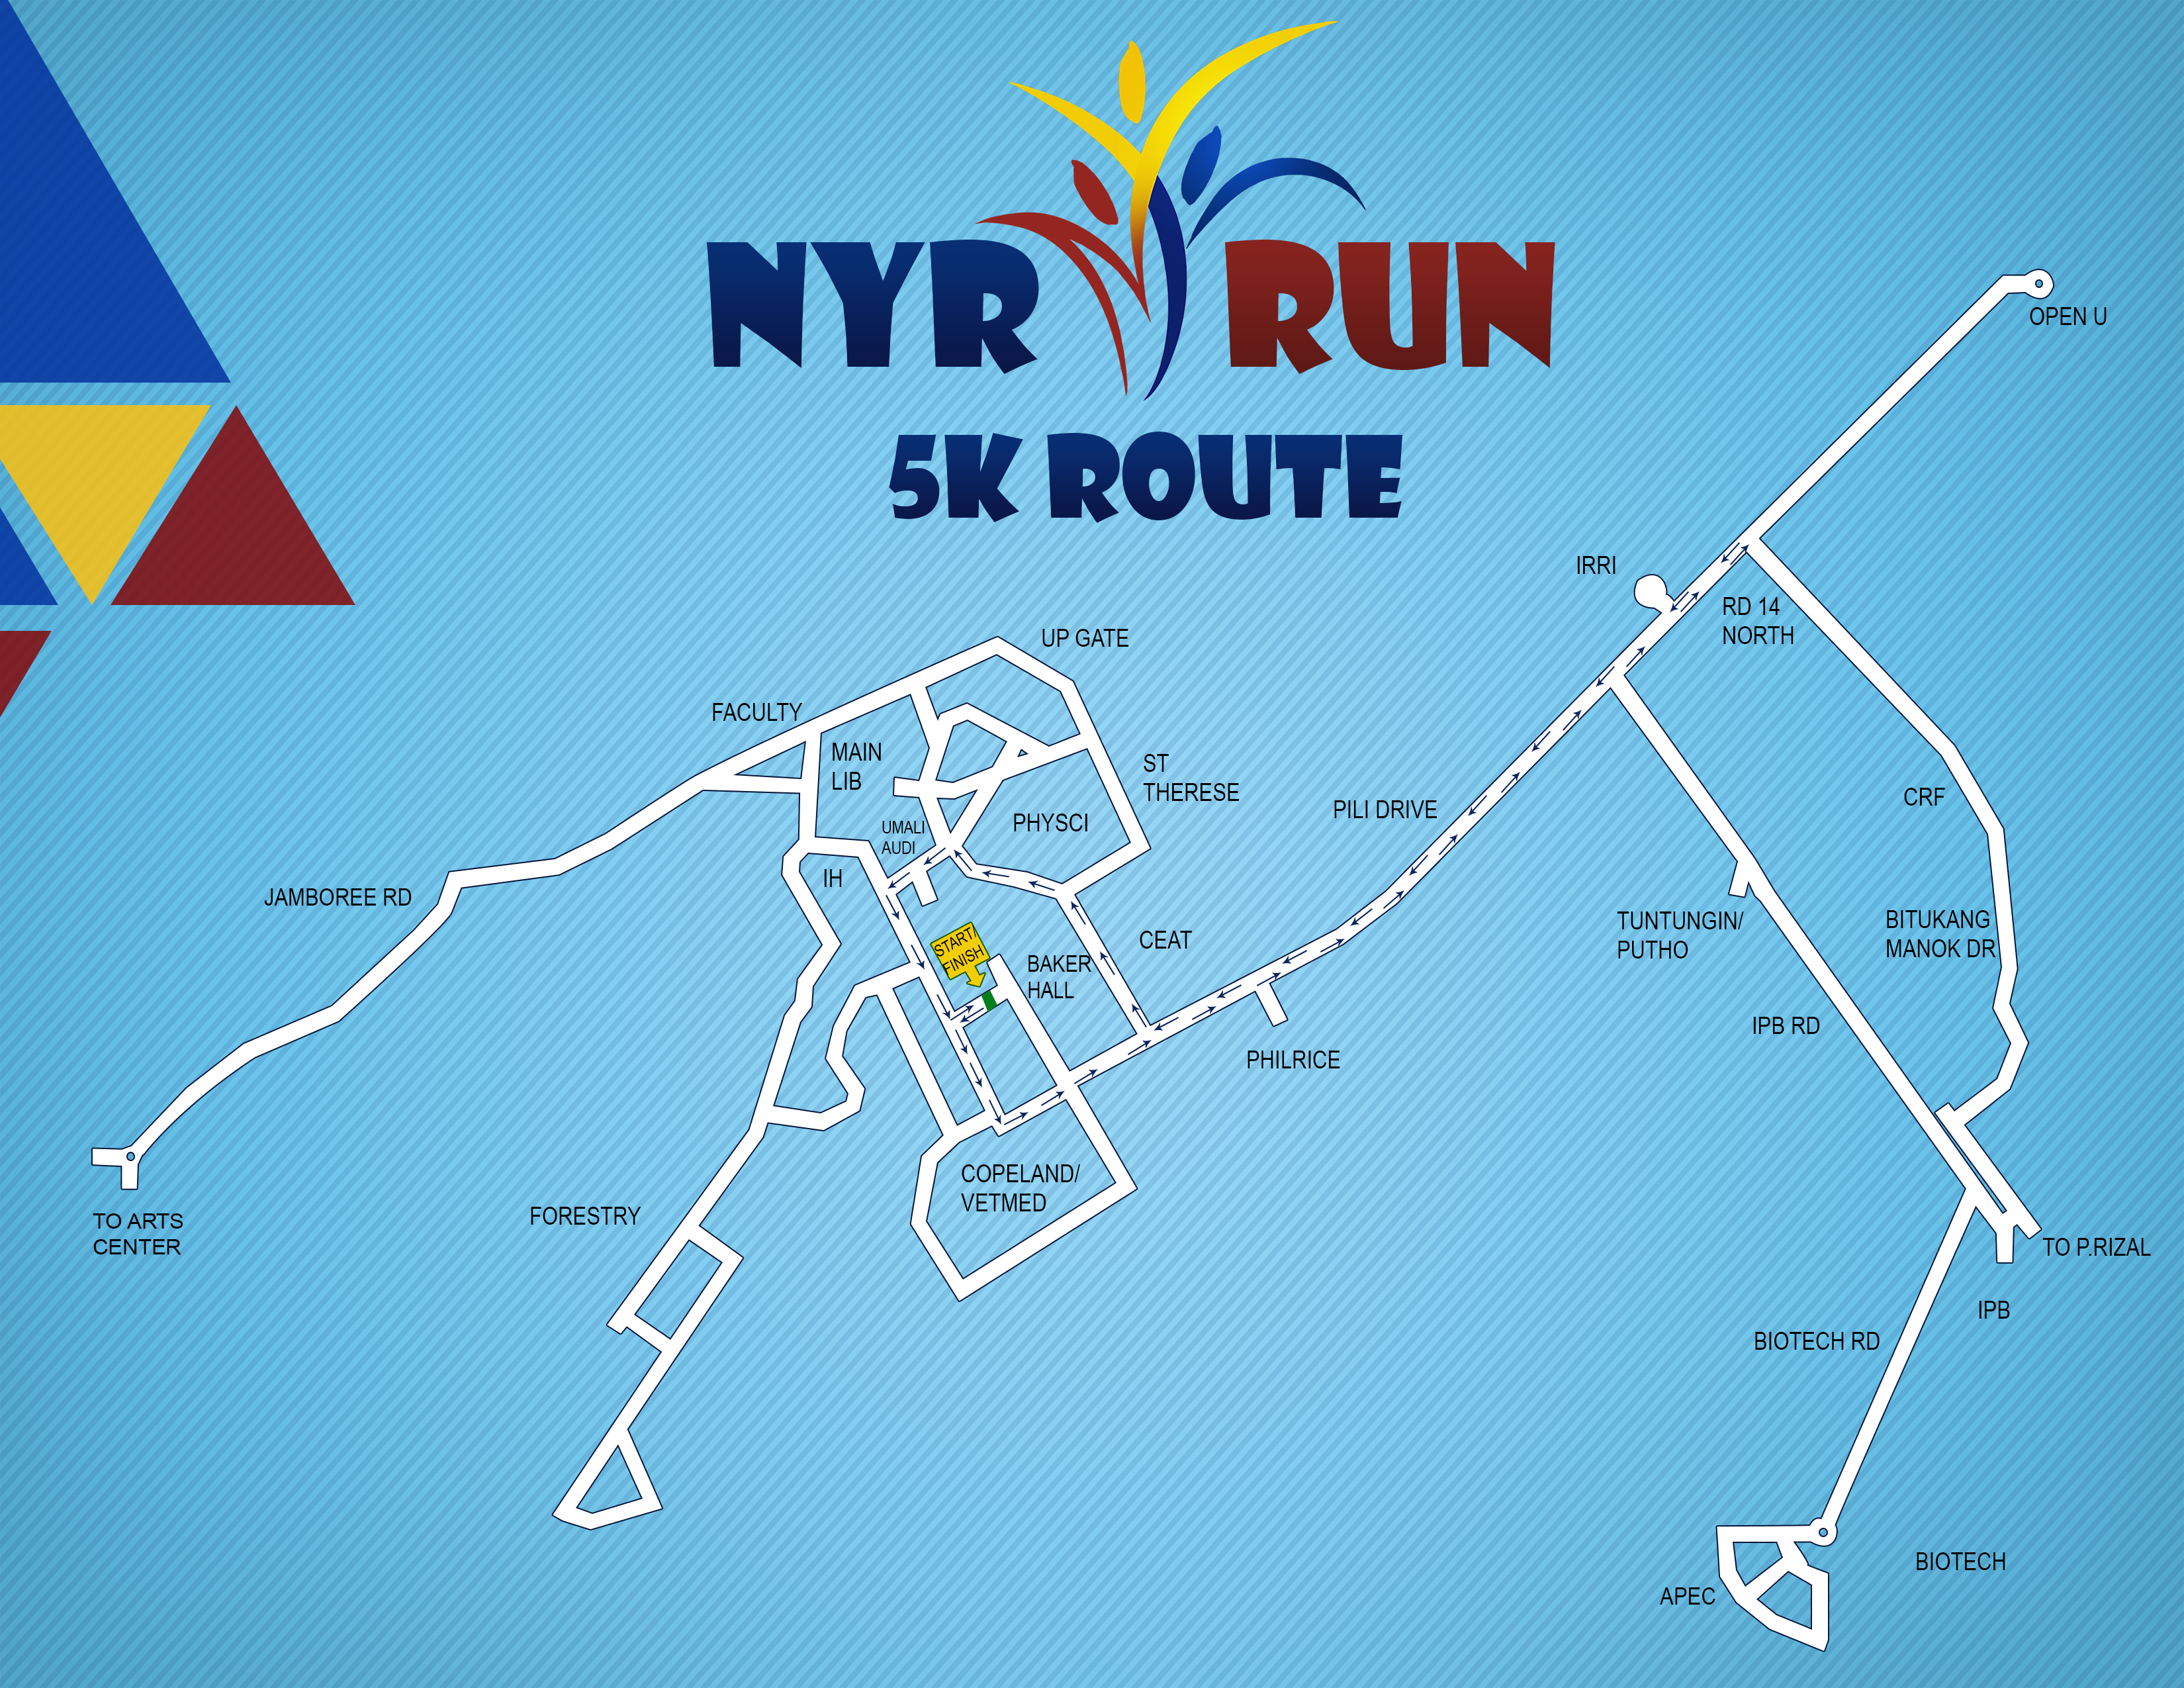 national-year-of-rice-run-2013-route-map-5k